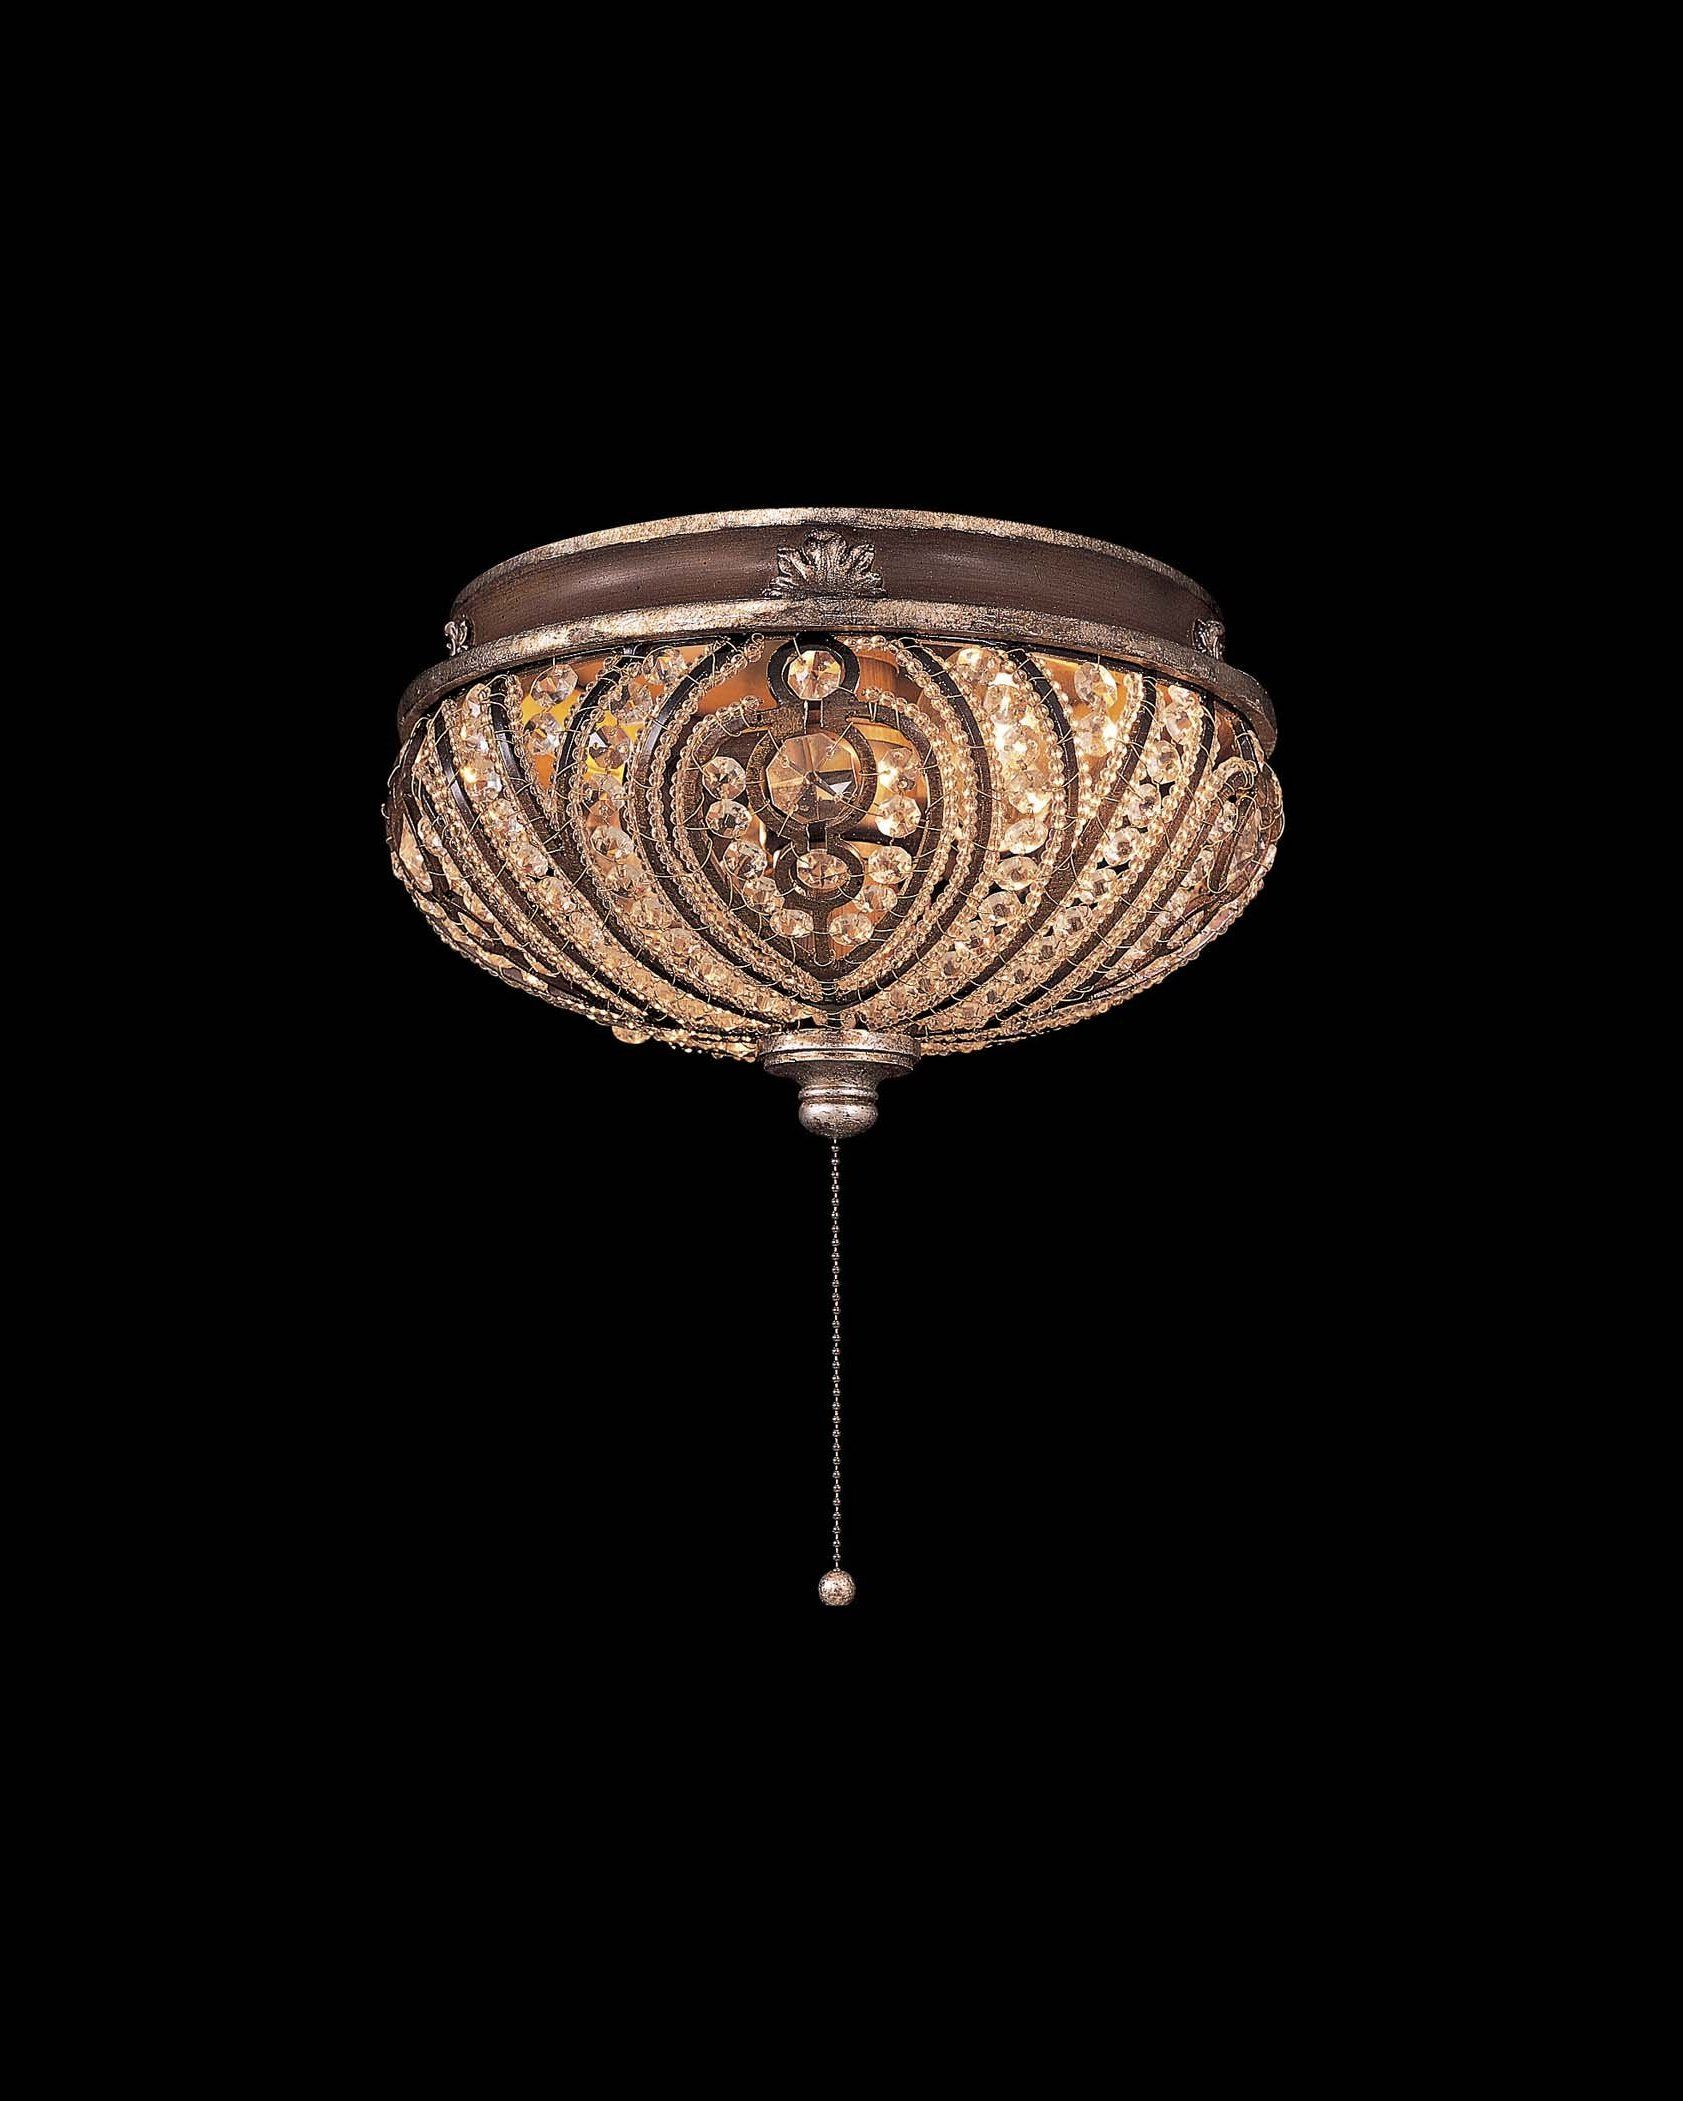 Ceiling Mount Light With Pull Chain Amazing Portrayal Of Pull Chain Ceiling Light Fixture For Interesting Design Ideas